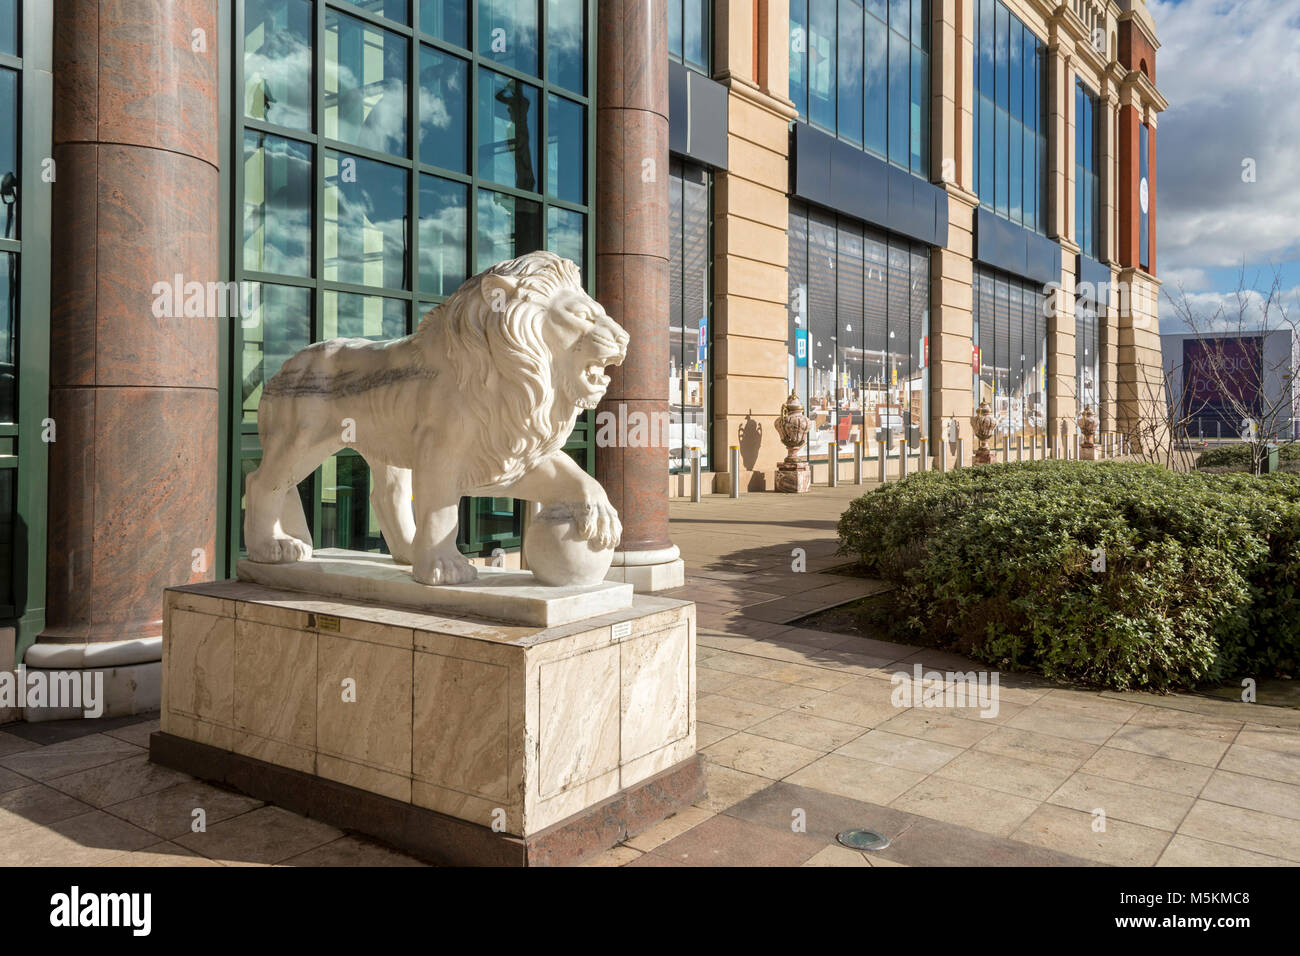 Lion sculpture at the entrance to Barton Square at the intu Trafford Centre, Manchester, UK - Stock Image